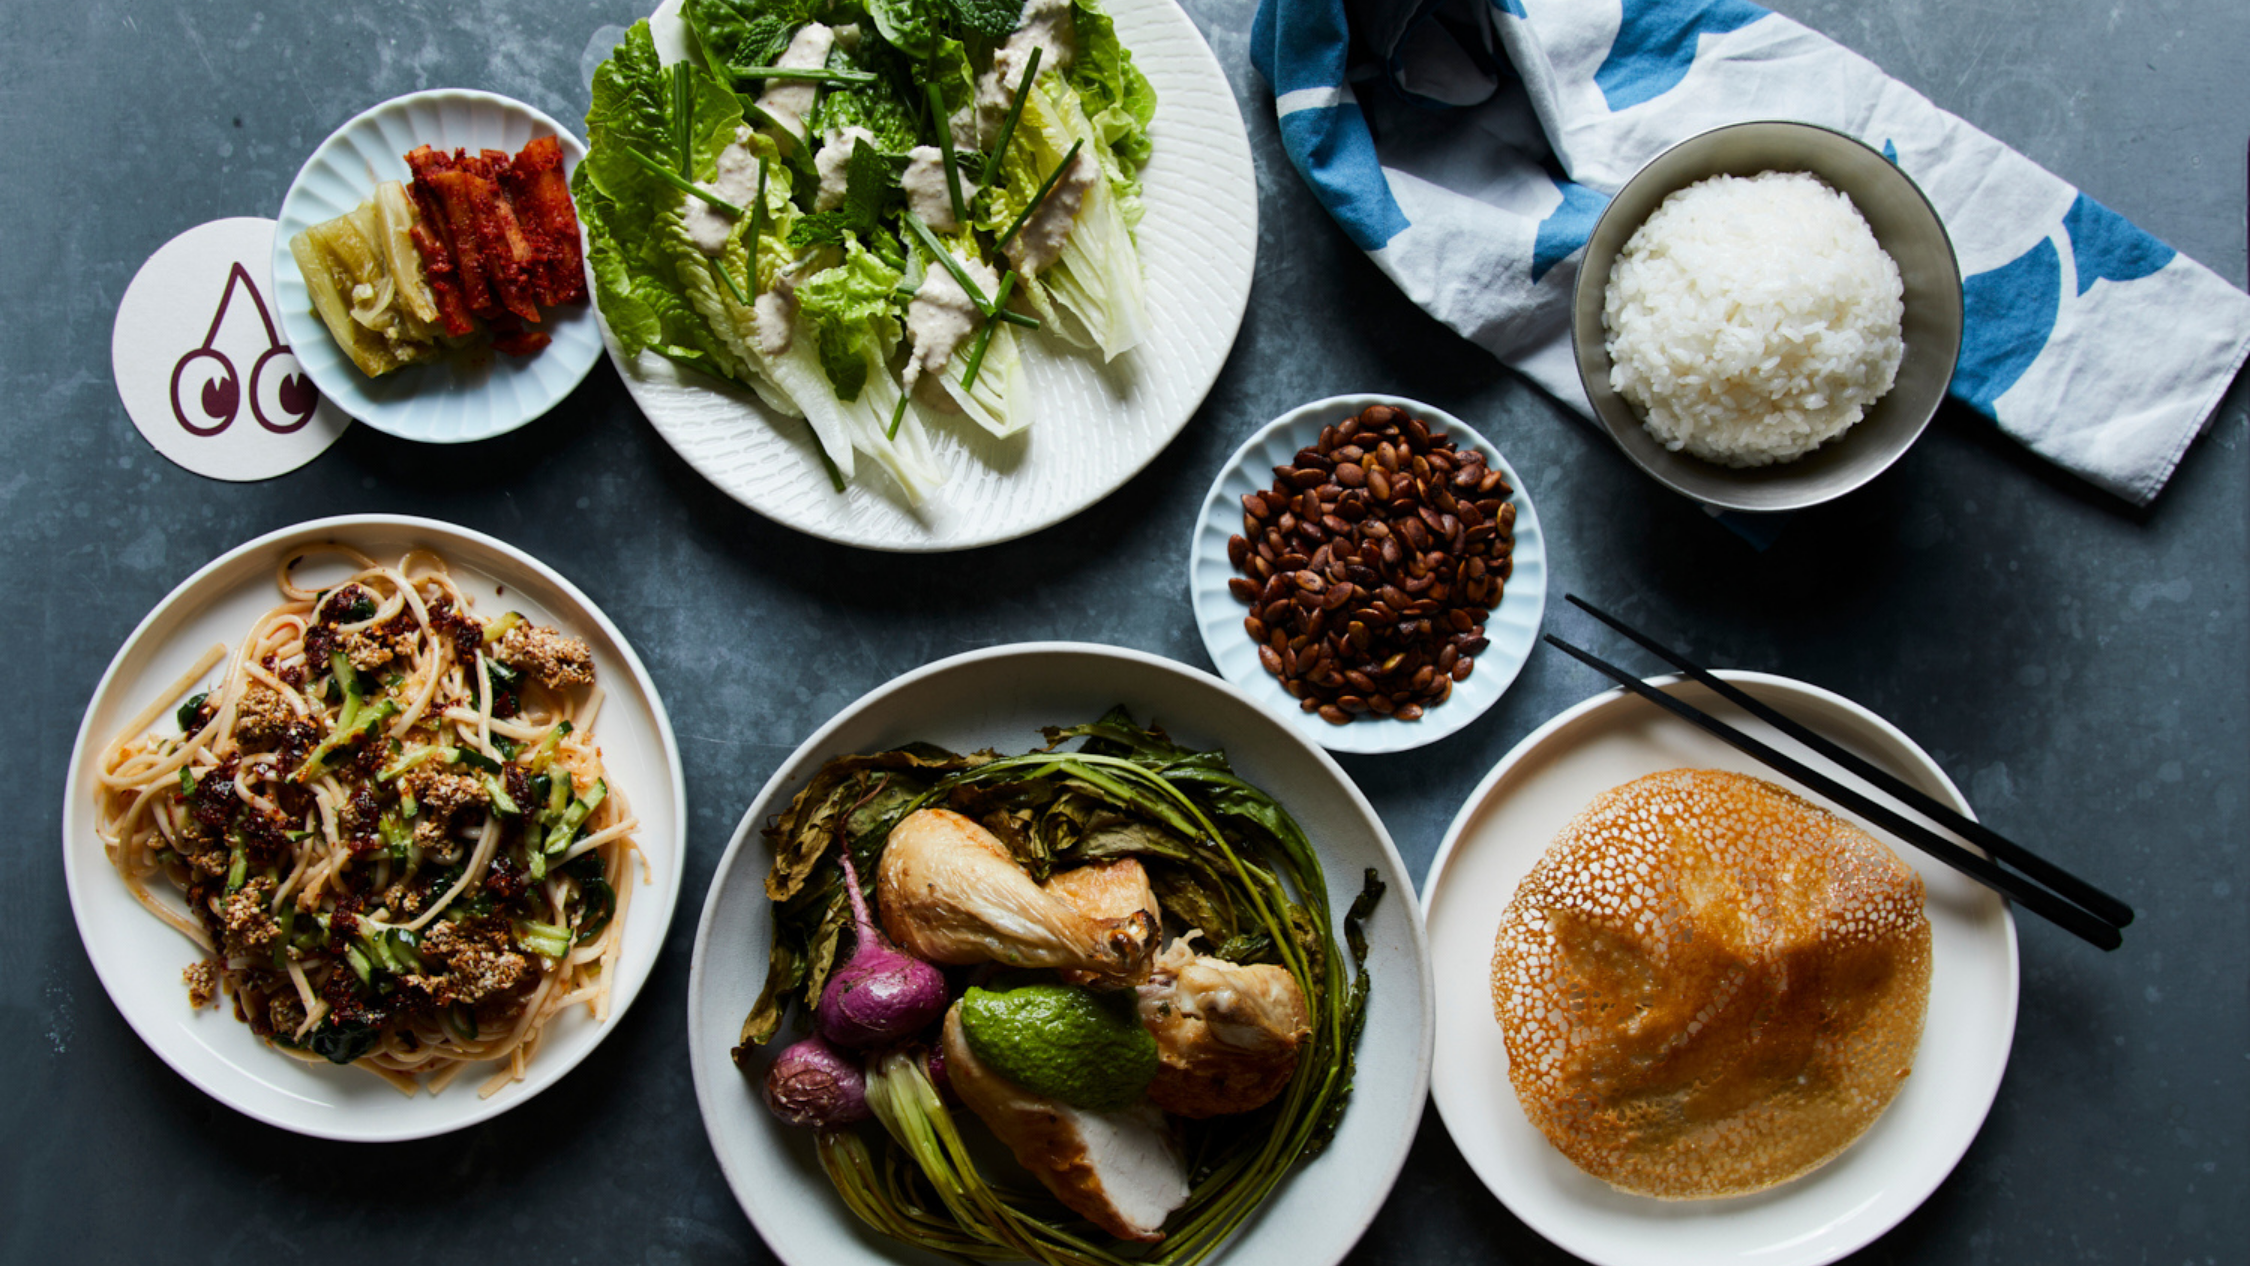 Game changing food delivery service Providoor is launching in Sydney this weekend